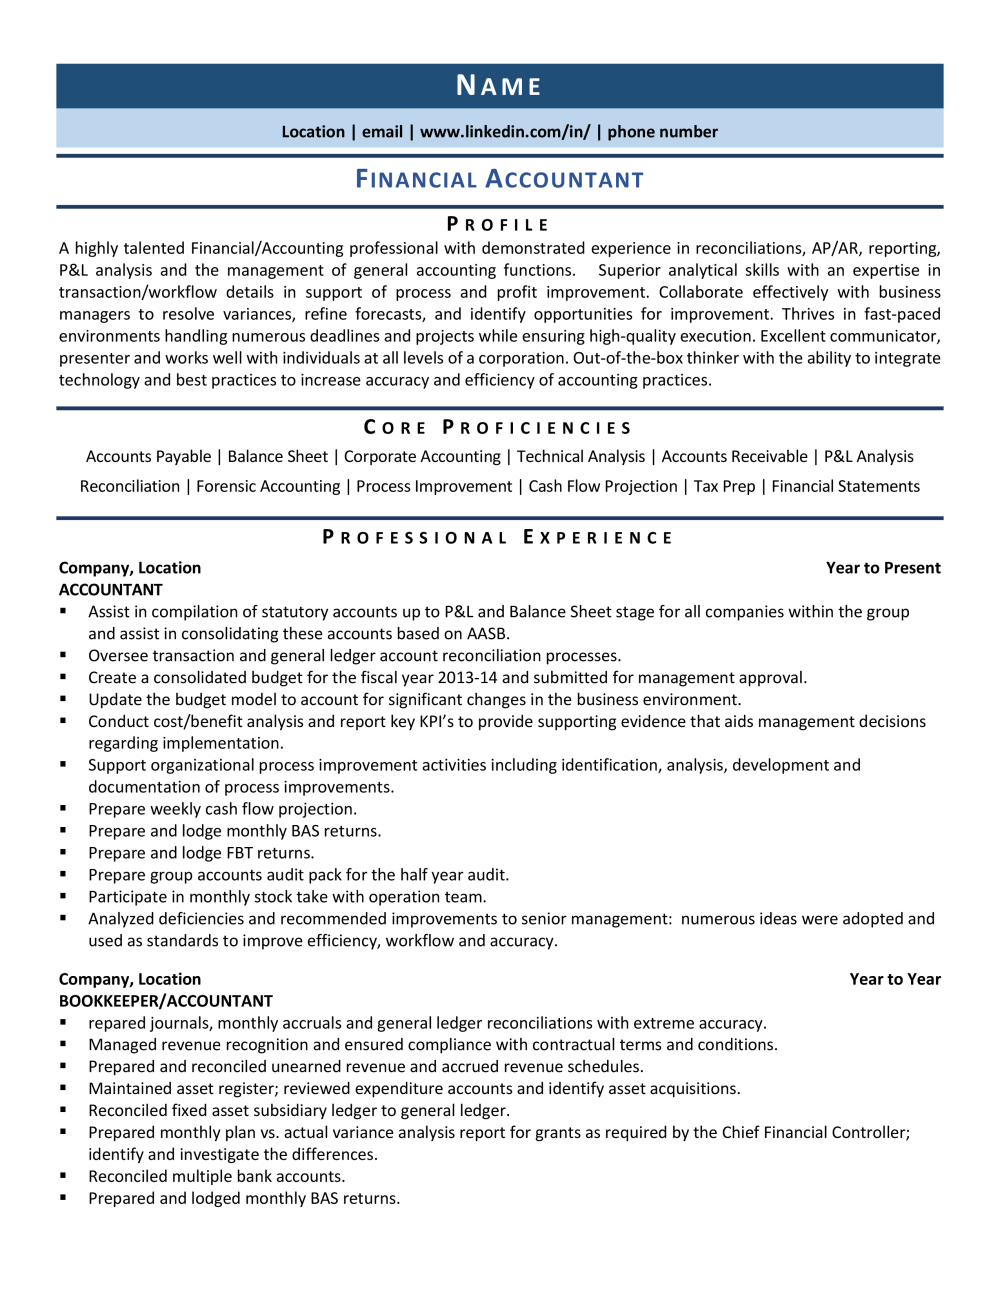 Bachelor's degree in accounting from an accredited university and experience of 12+ years overall or master's degree and 10+ years of experience. Financial Accountant Resume Example Template For 2021 Zipjob